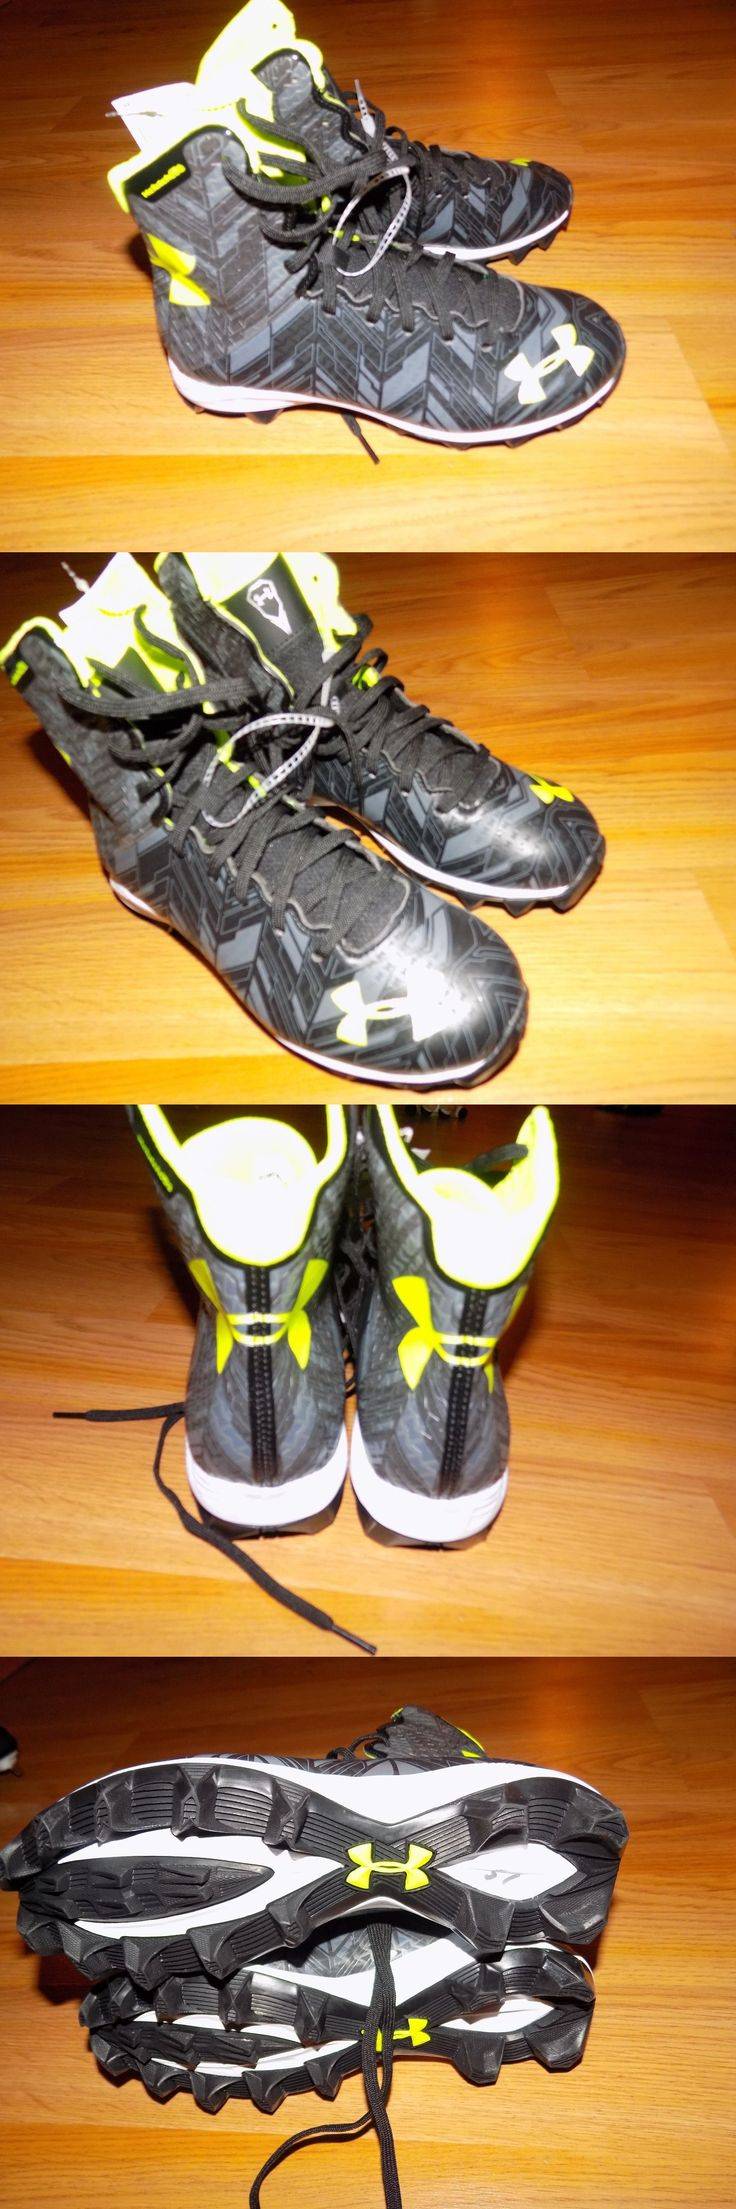 Youth 159118: Youth Size 5 Under Armour High Top Football Cleats Shoes Black Neon Yellow New -> BUY IT NOW ONLY: $60 on eBay!